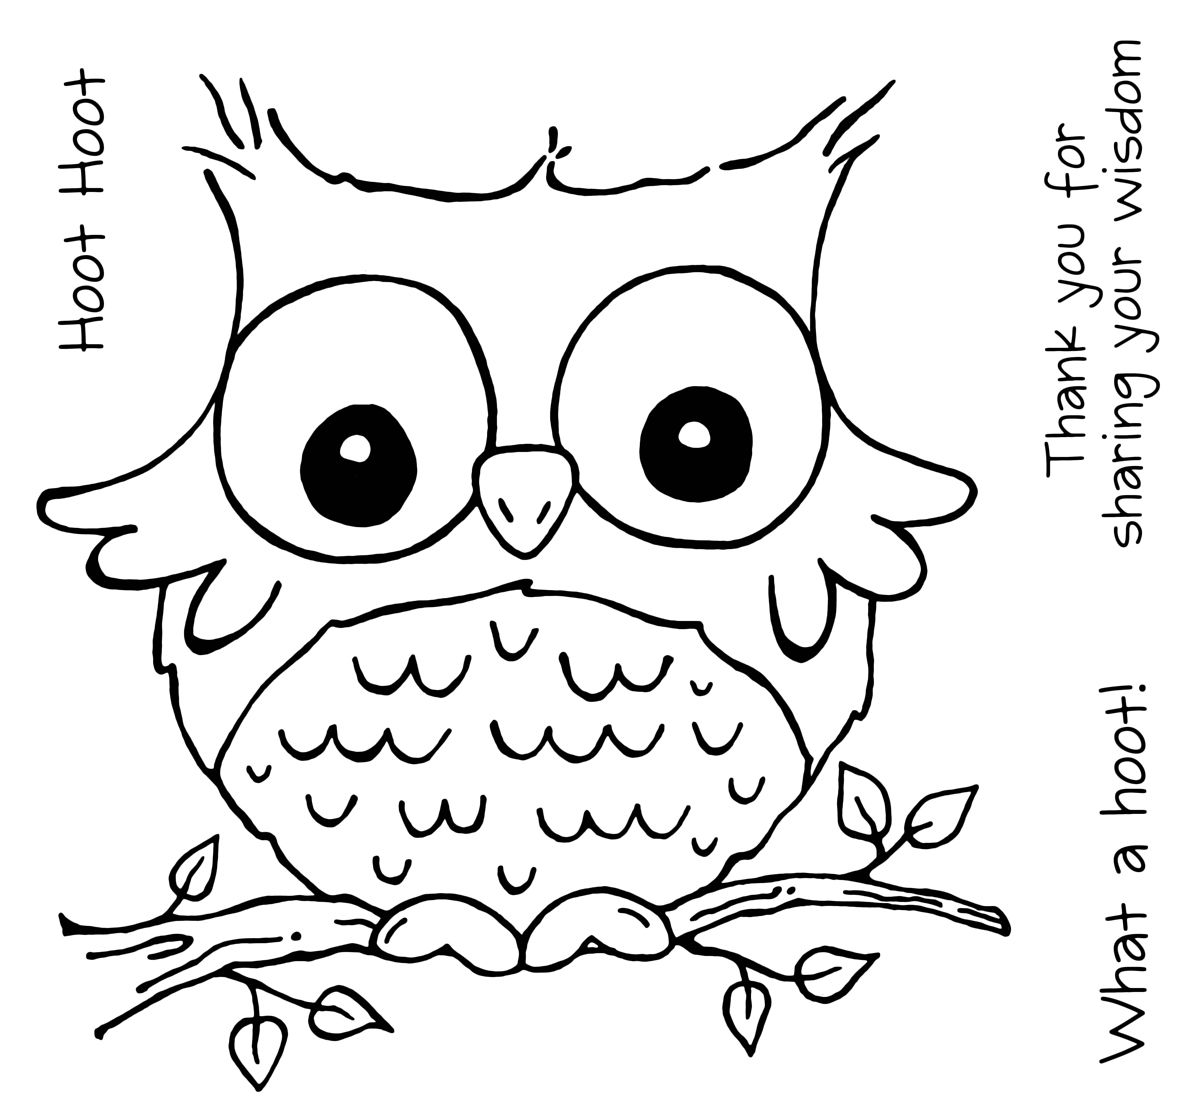 Cute owl coloring pages – Coloring Pages & Pictures Cute Owl ...